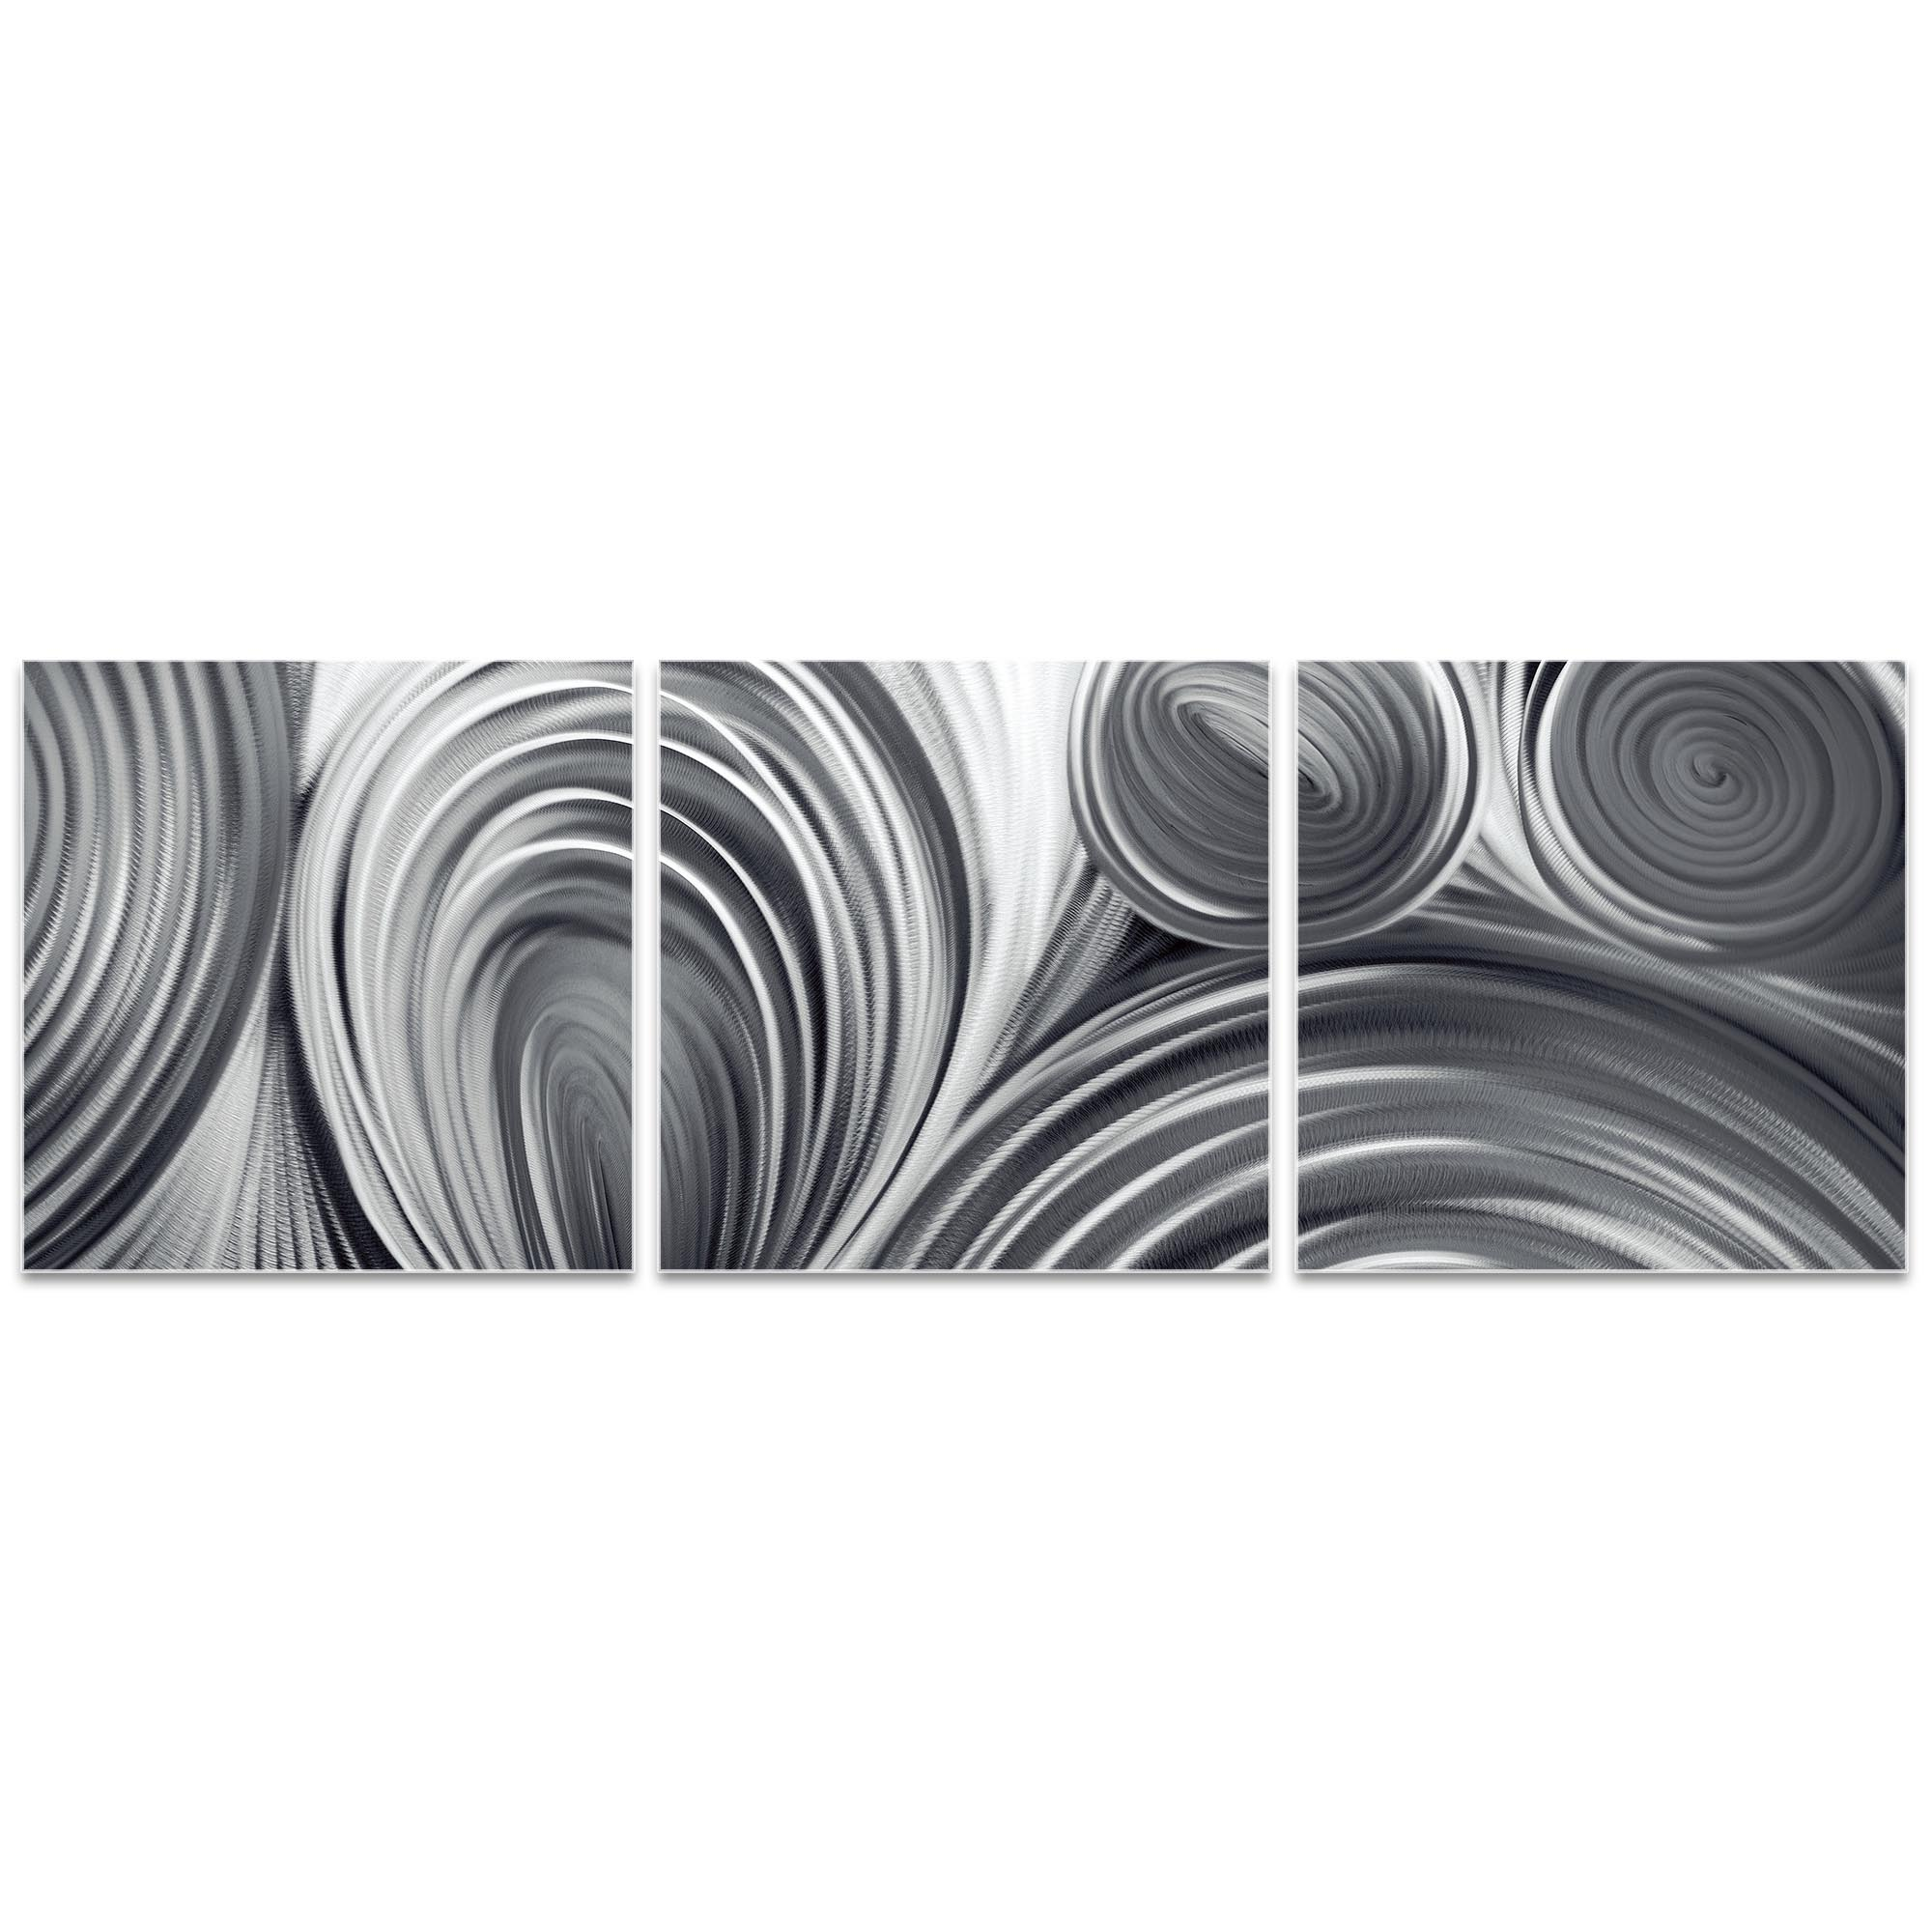 Conduction Triptych Large 70x22in. Metal or Acrylic Contemporary Decor - Image 2